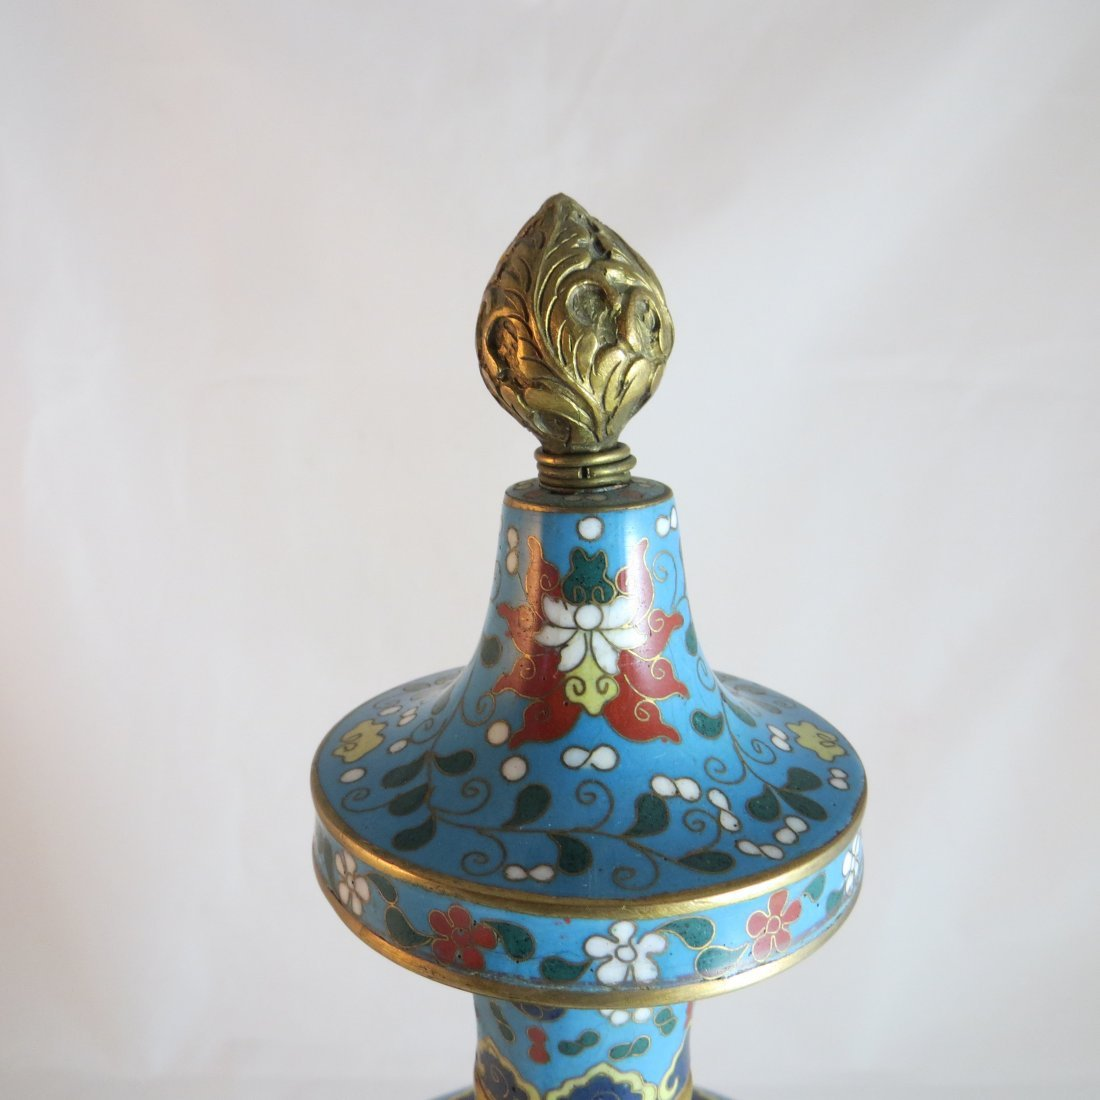 Chinese Qing Dynasty Cloisonne Tea/Coffee Pot - 4